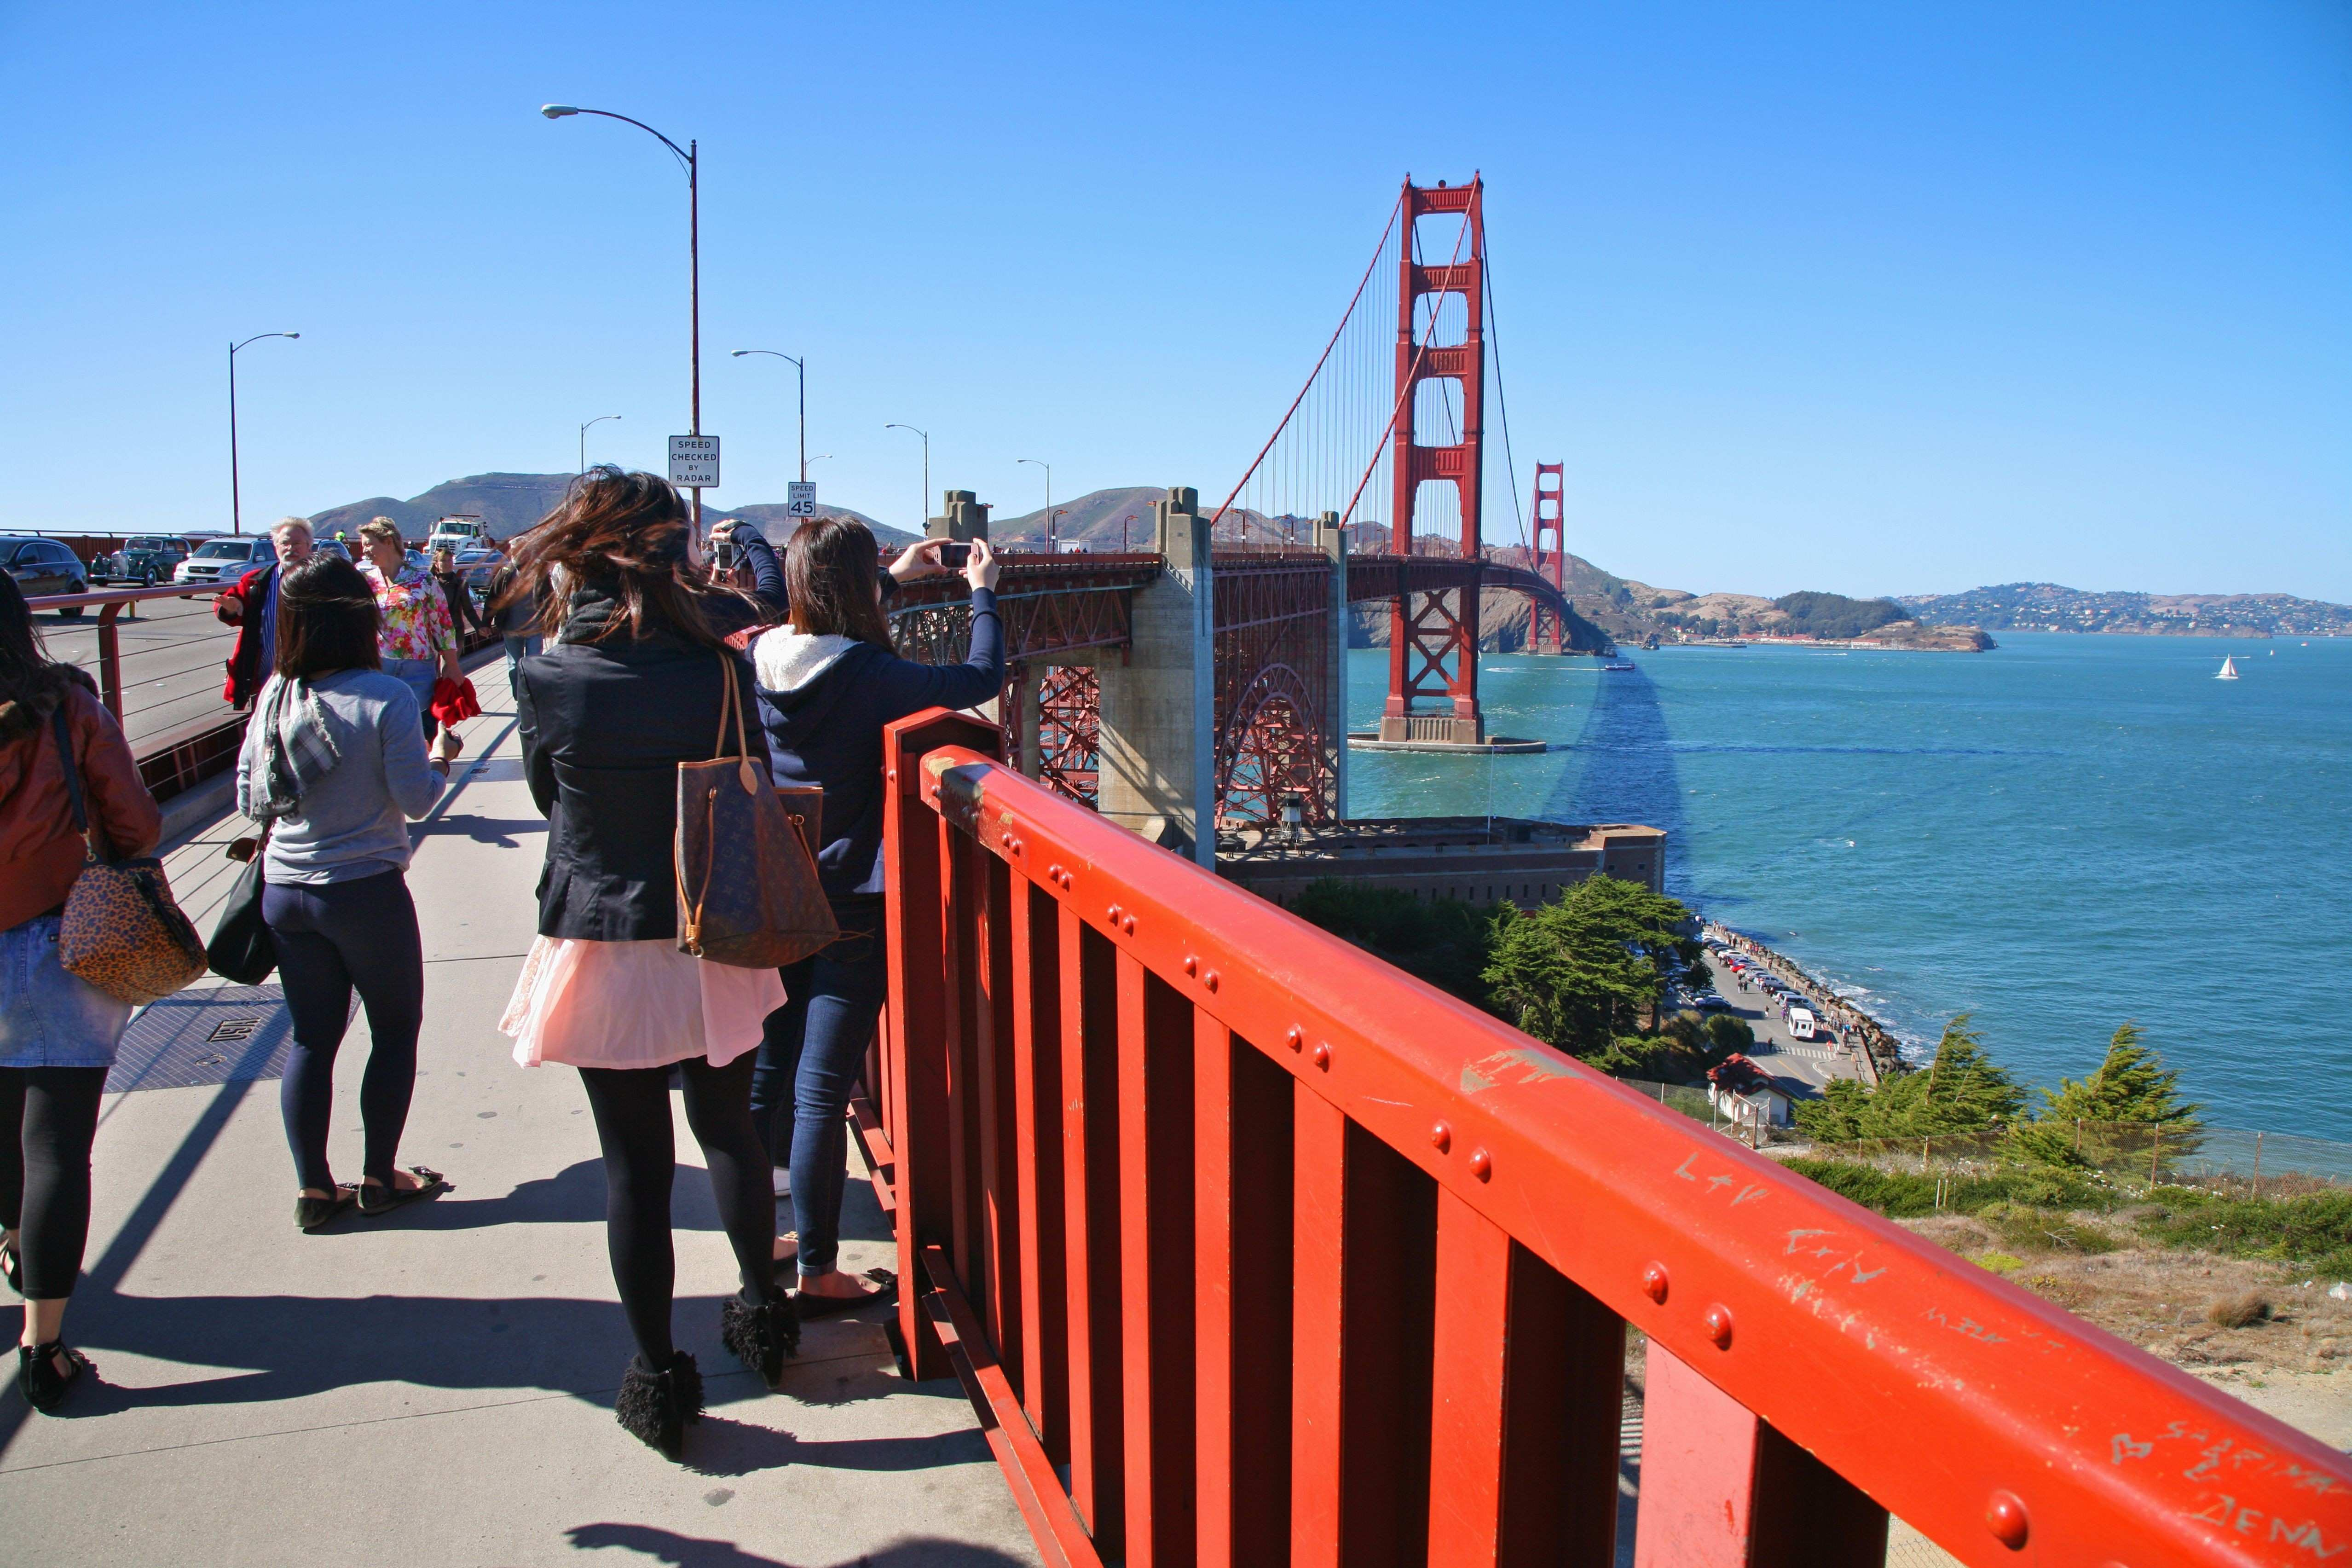 Best of the Rest Things to Do in San Francisco